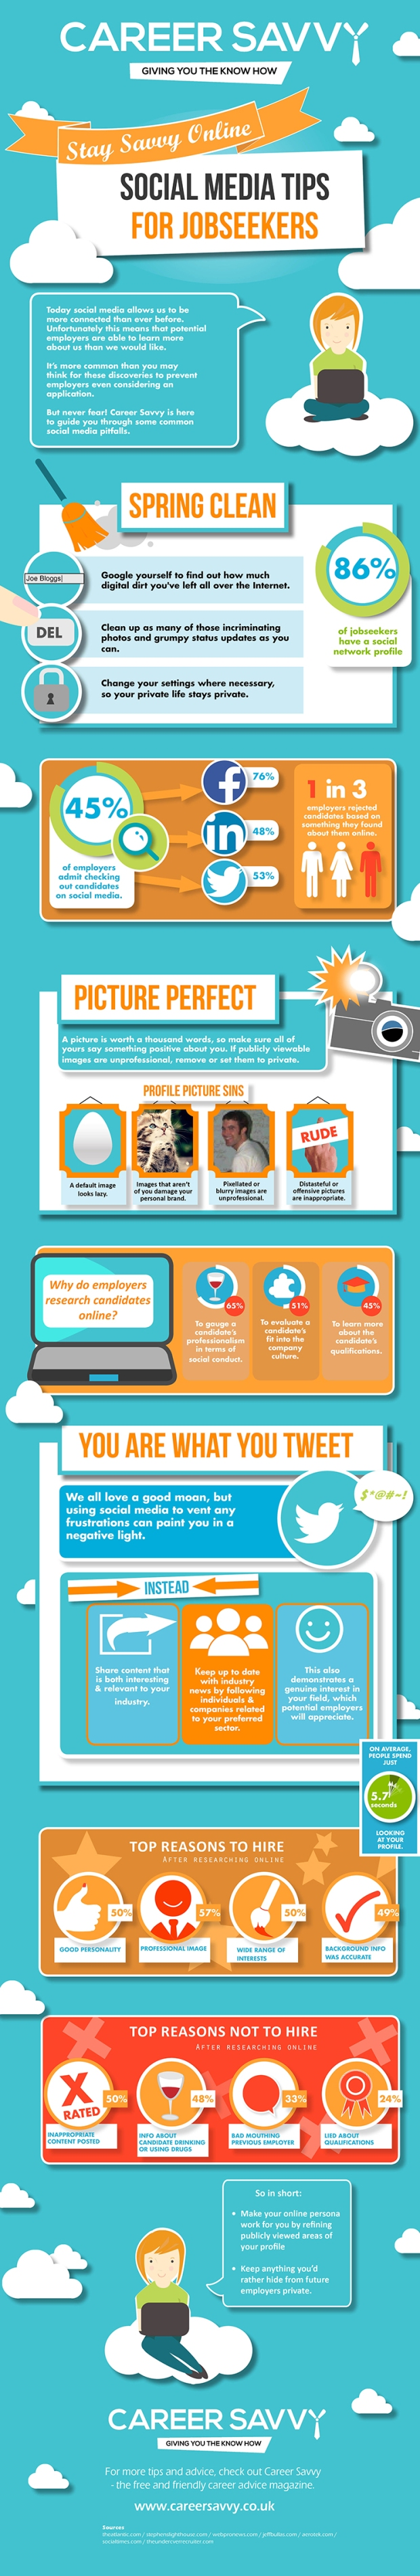 Handy Social Media Tips for Jobseekers [INFOGRAPHIC]